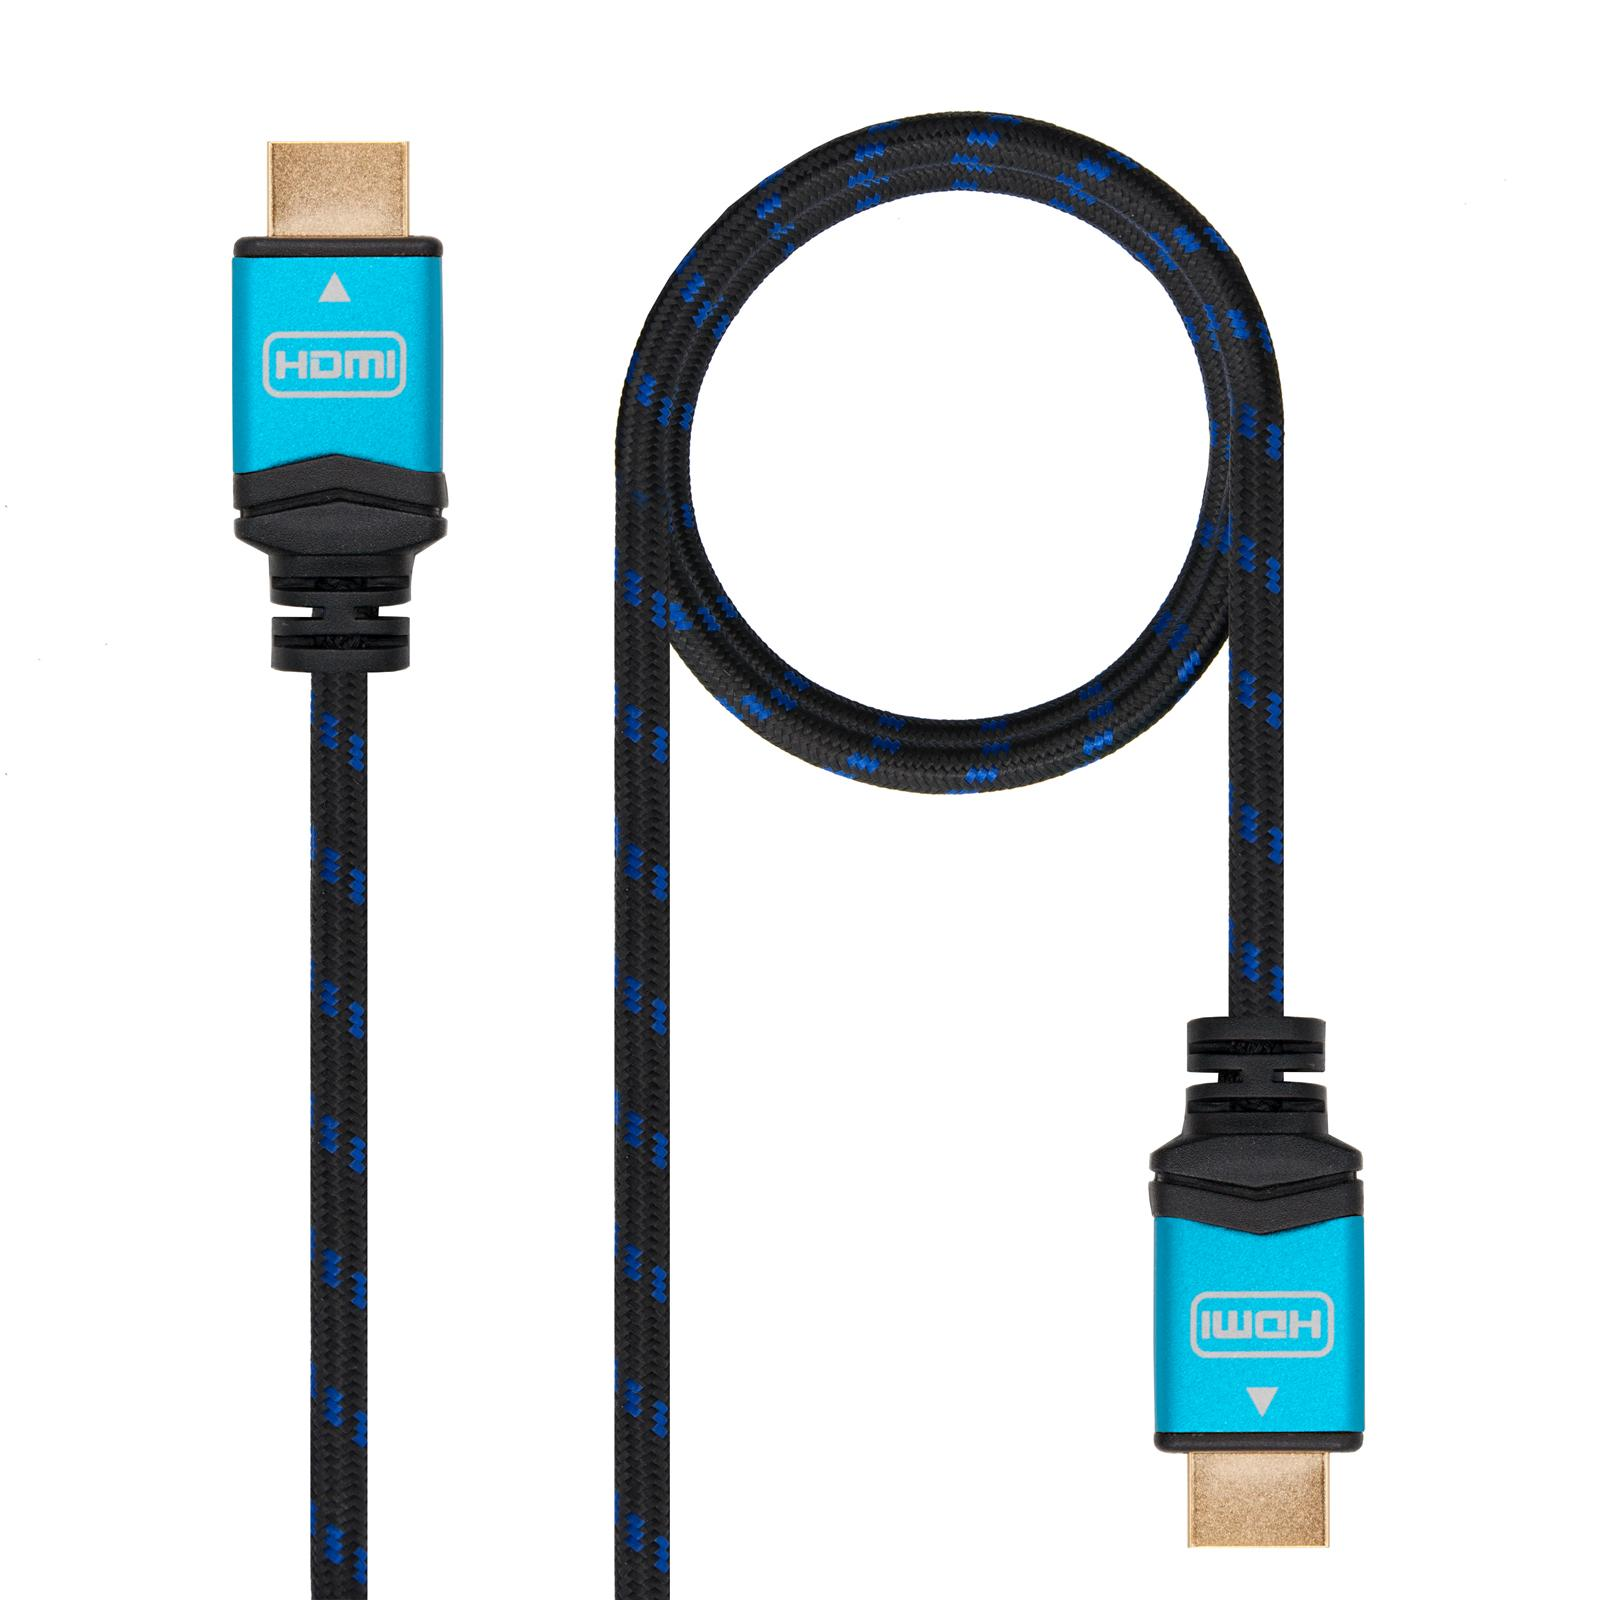 Cable HDMI TO HDMI 0,5 M HDMI V2.0 4k @ 60Hz 18gbps 10.15.3700